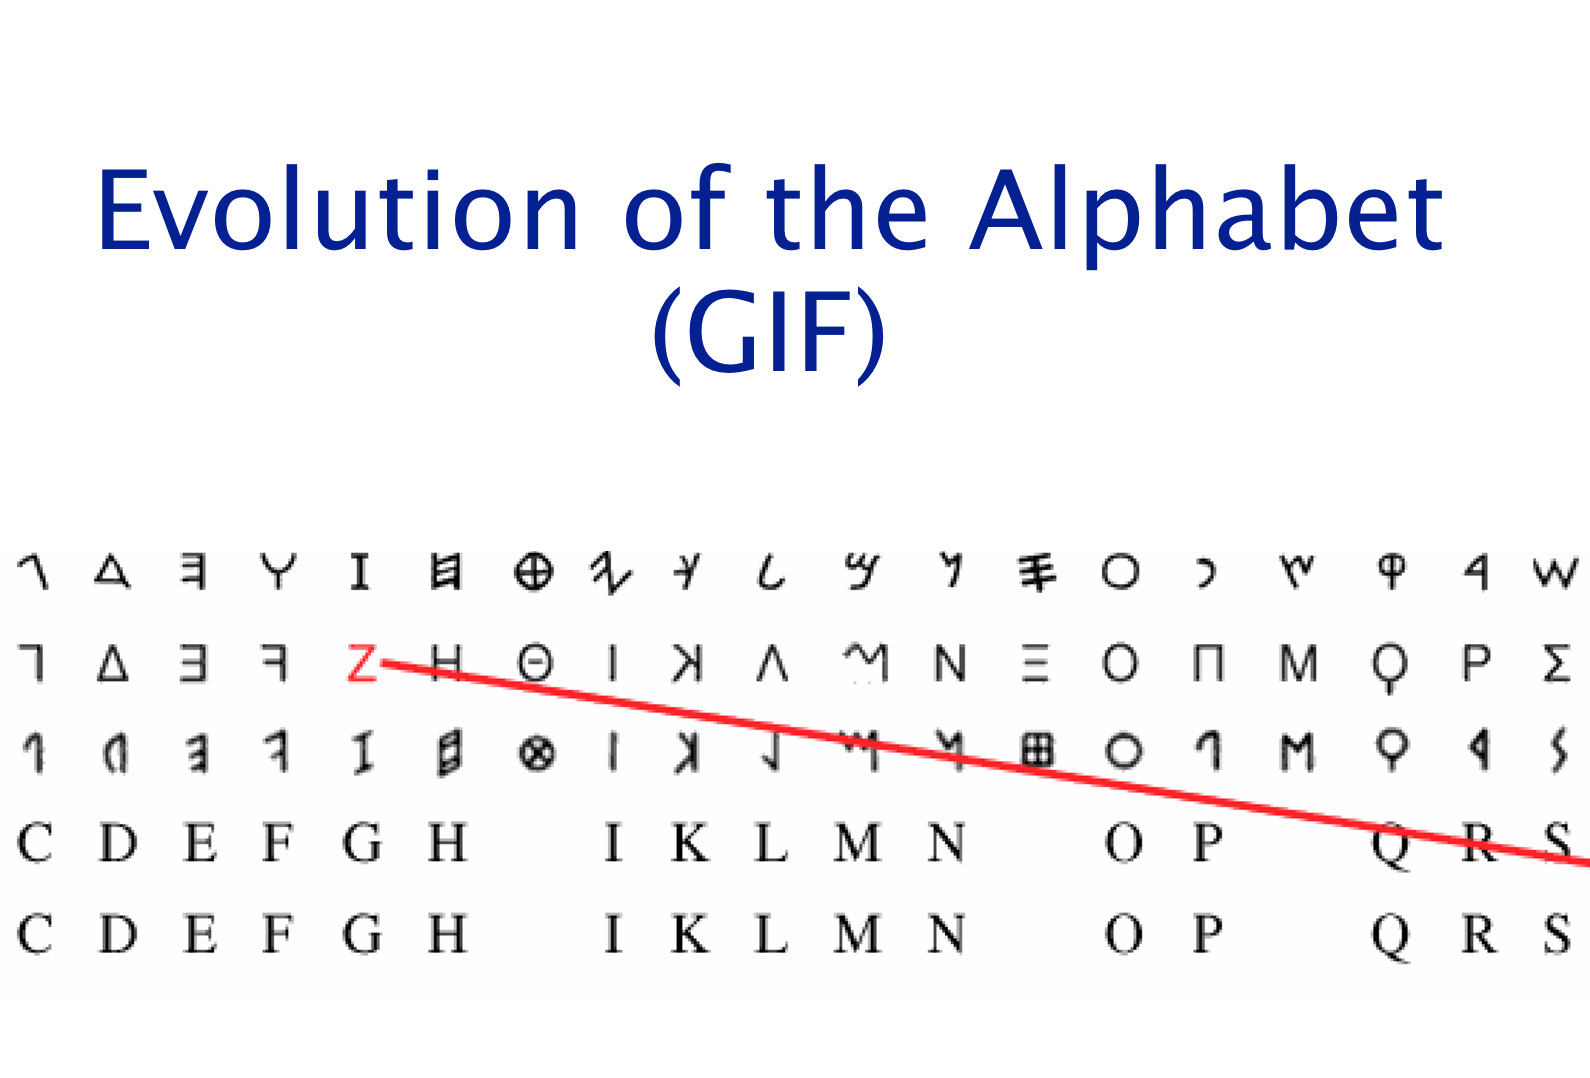 Worksheets The Alphabet evolution of the alphabet wait but why